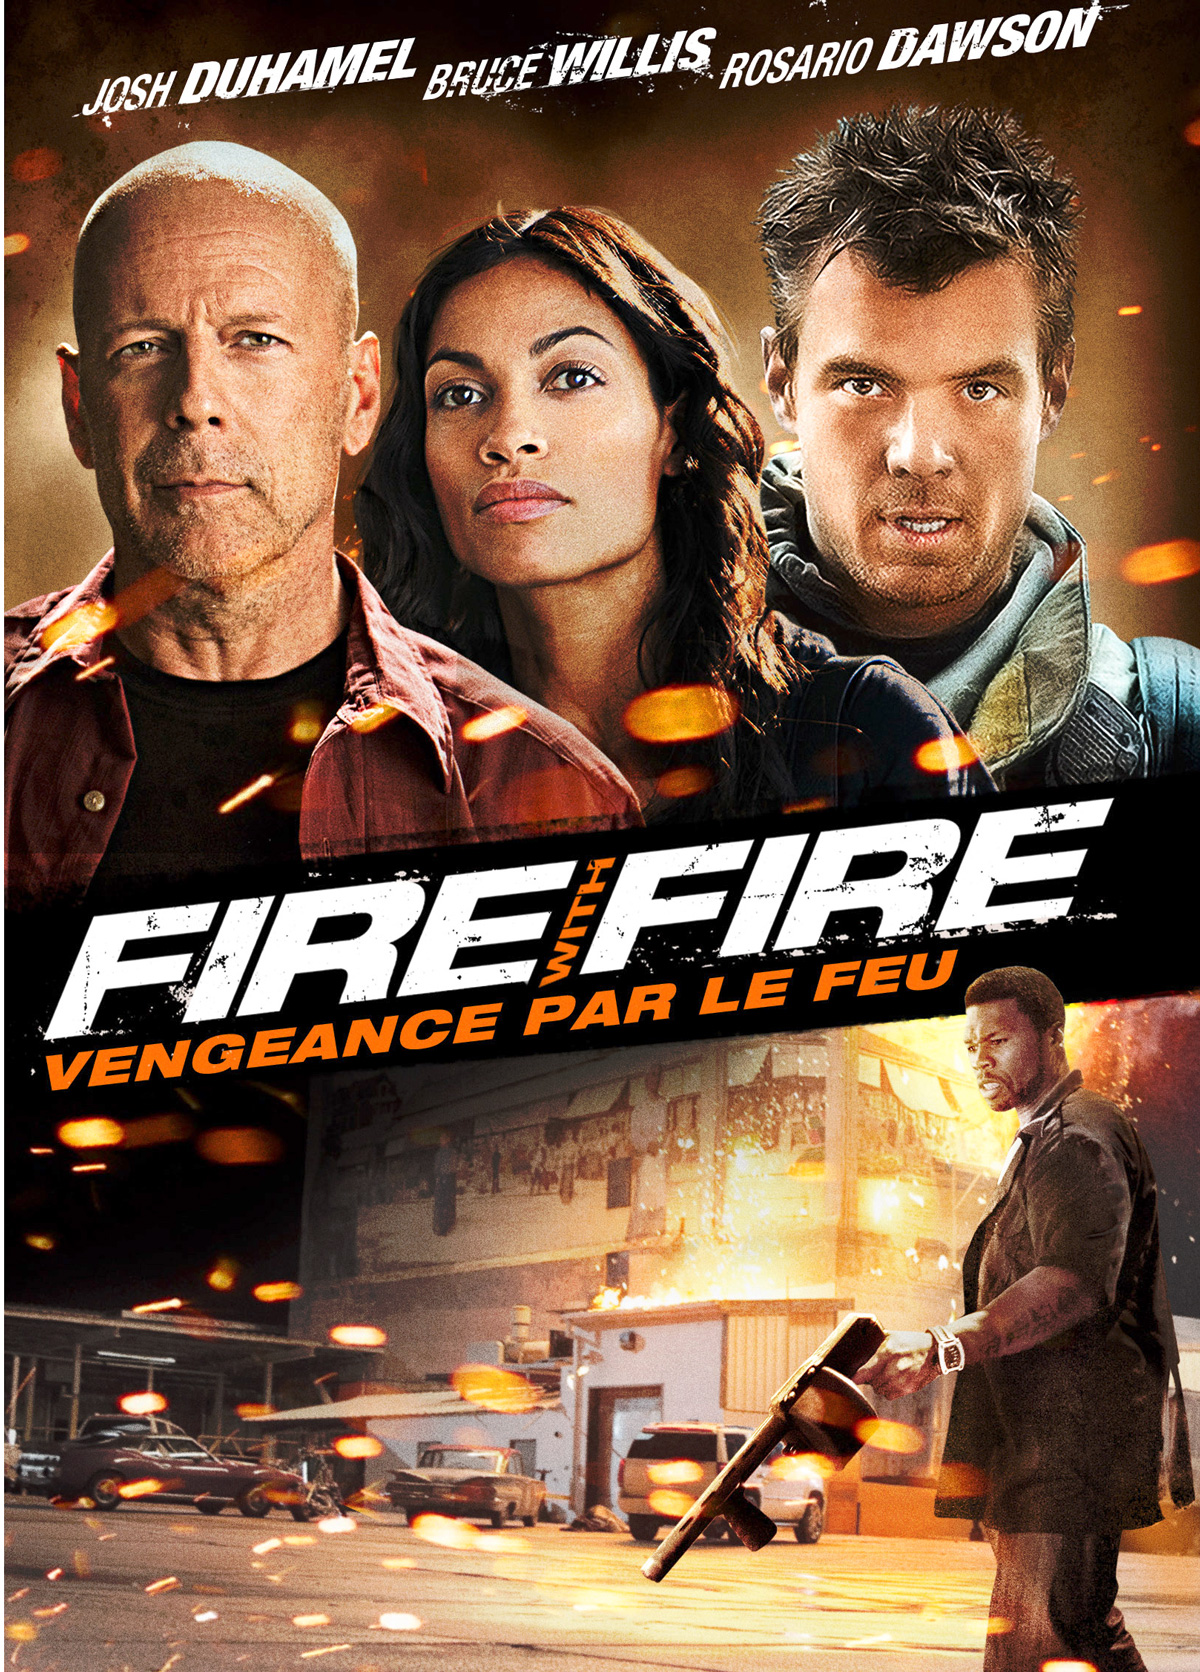 Fire with fire, vengeance par le feu - film 2012 - AlloCiné